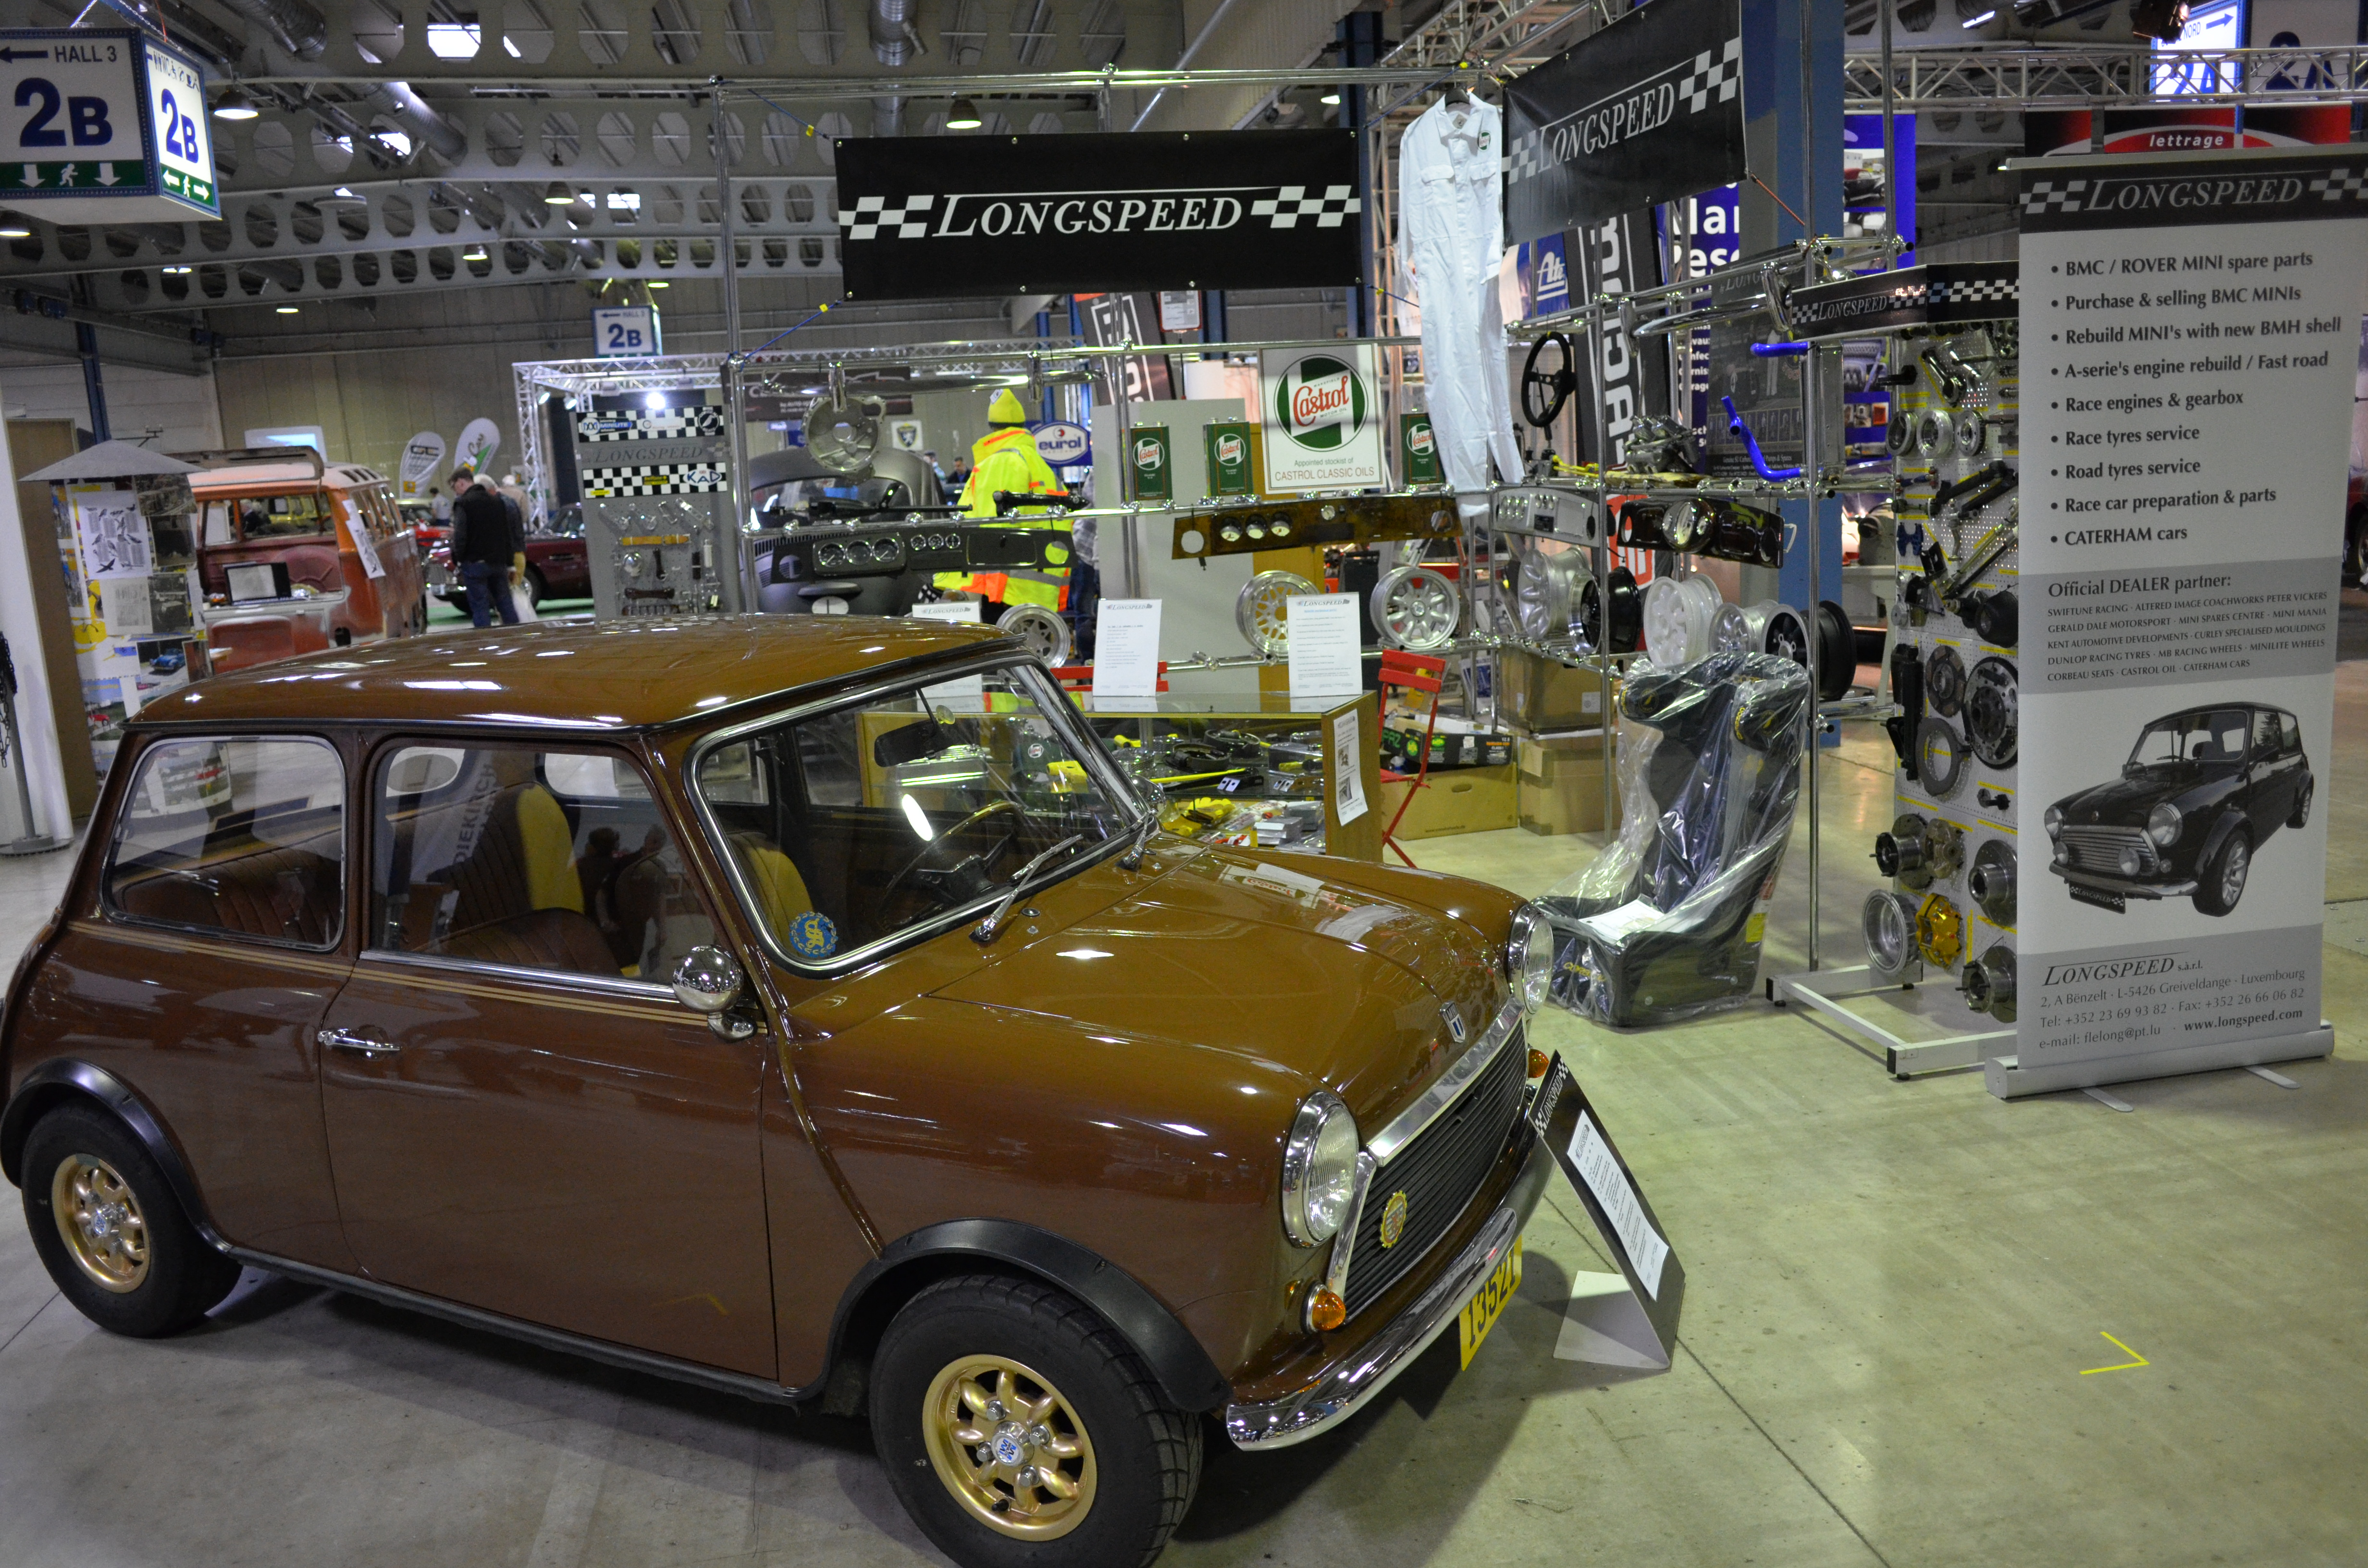 Projects News Events Longspeed The Mini Classic Center In